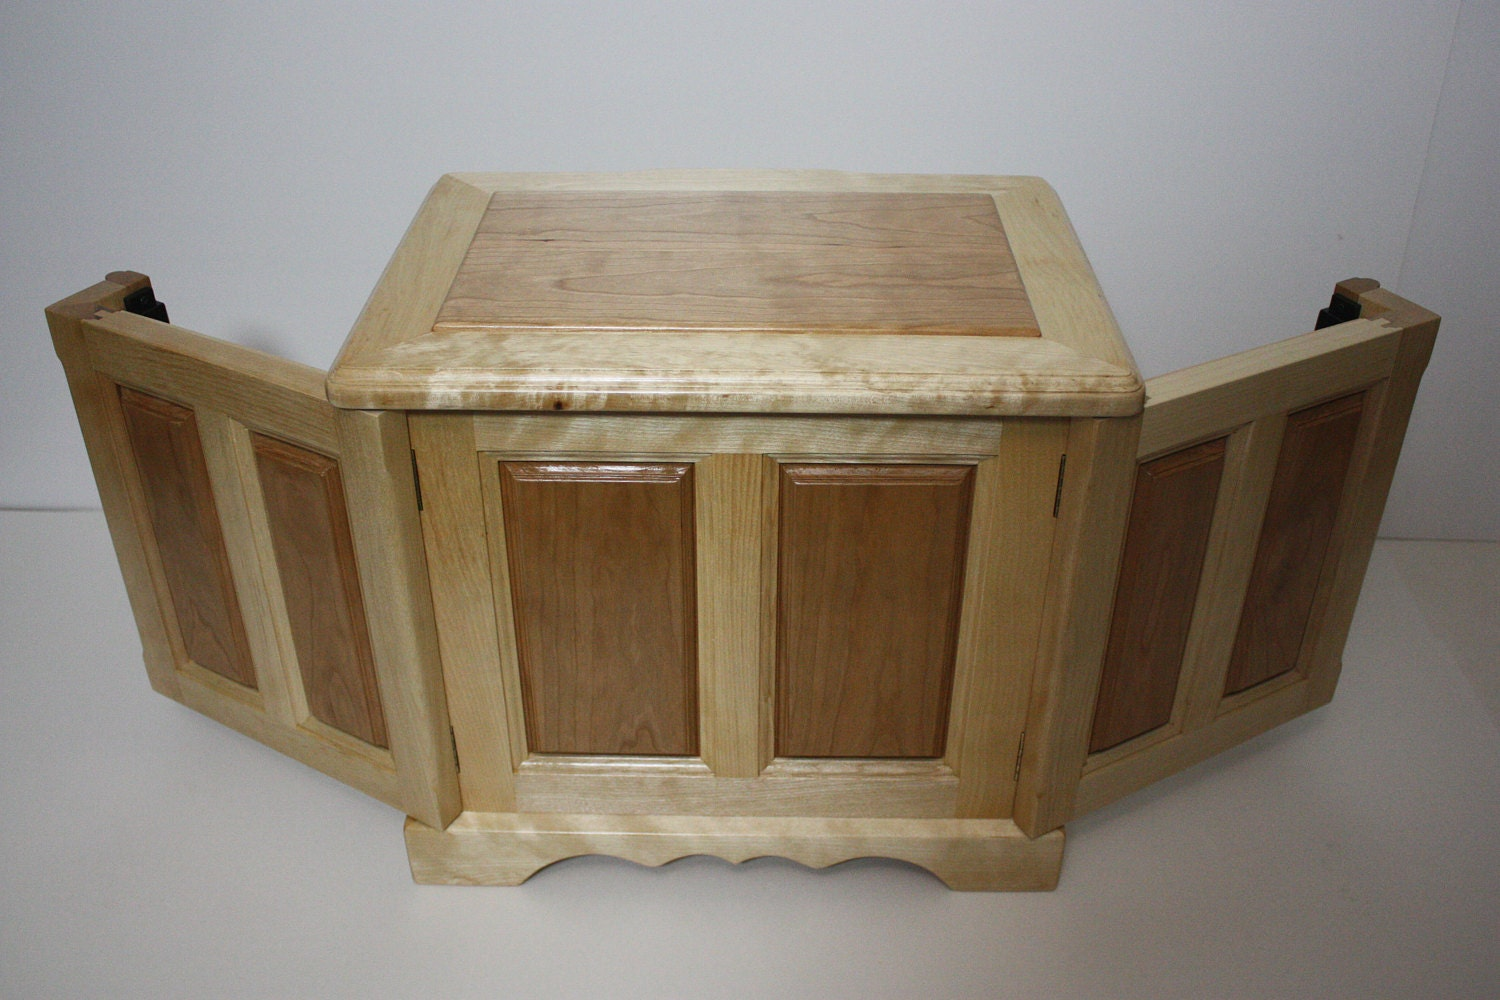 Jewelry Box with Swing Out Sides for Necklaces and Earrings